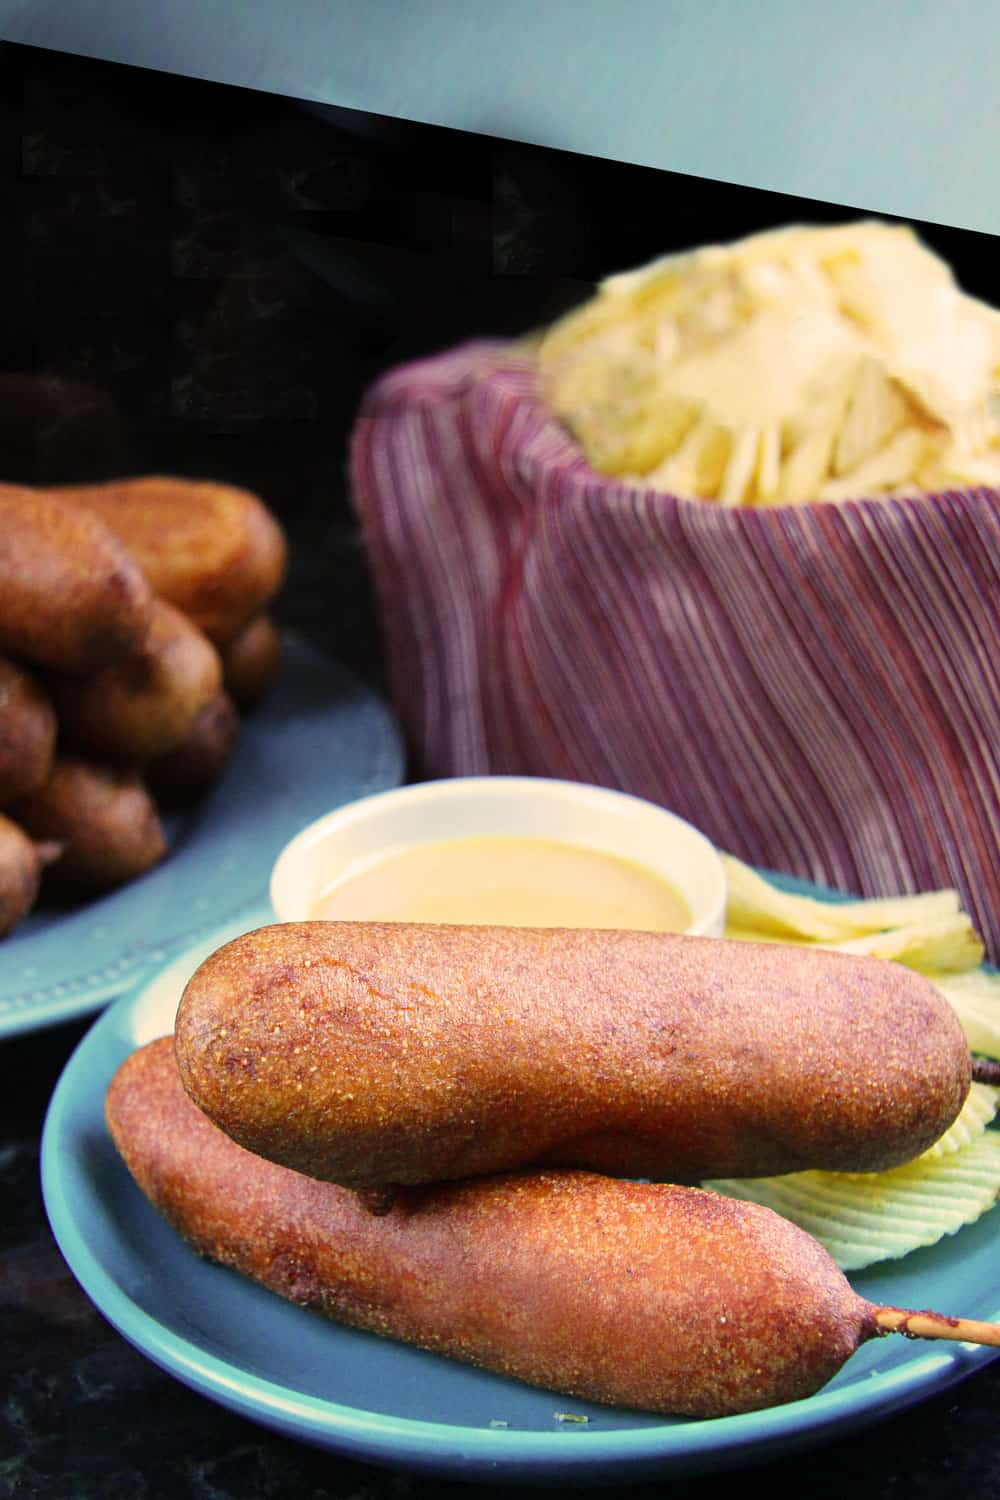 two golden corn dogs on a blue plate with honey mustard sauce